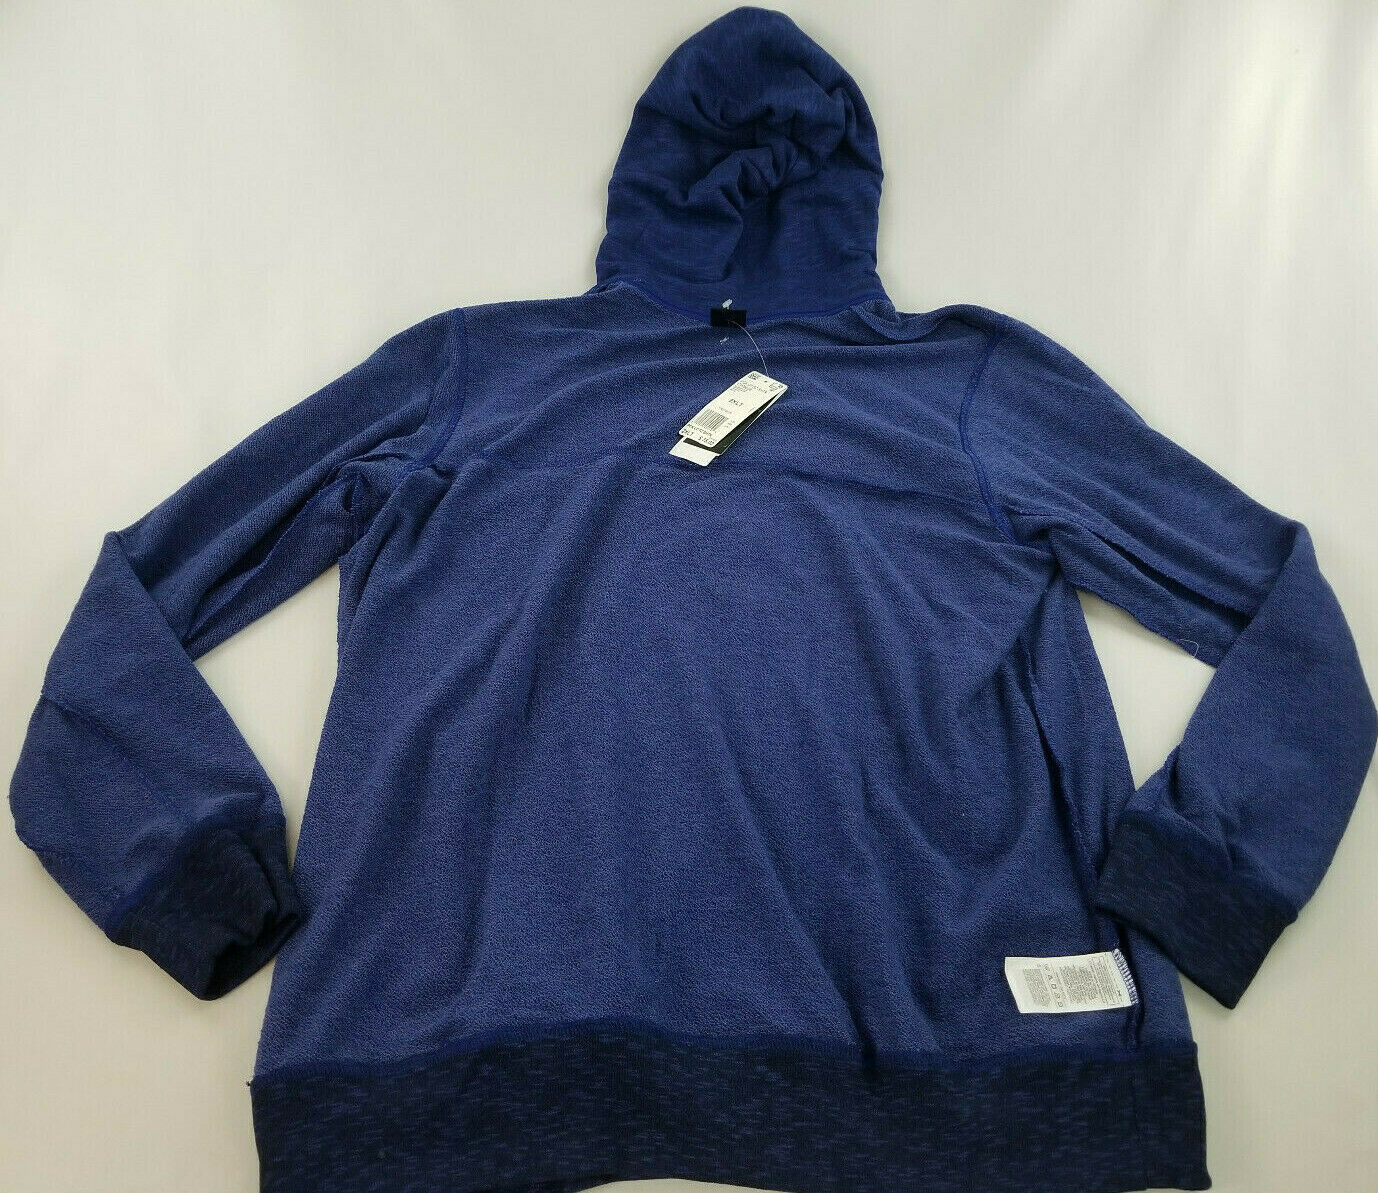 new ADIDAS men jacket hoodie full zip CW9658 blue 2XL MSRP $75 image 6